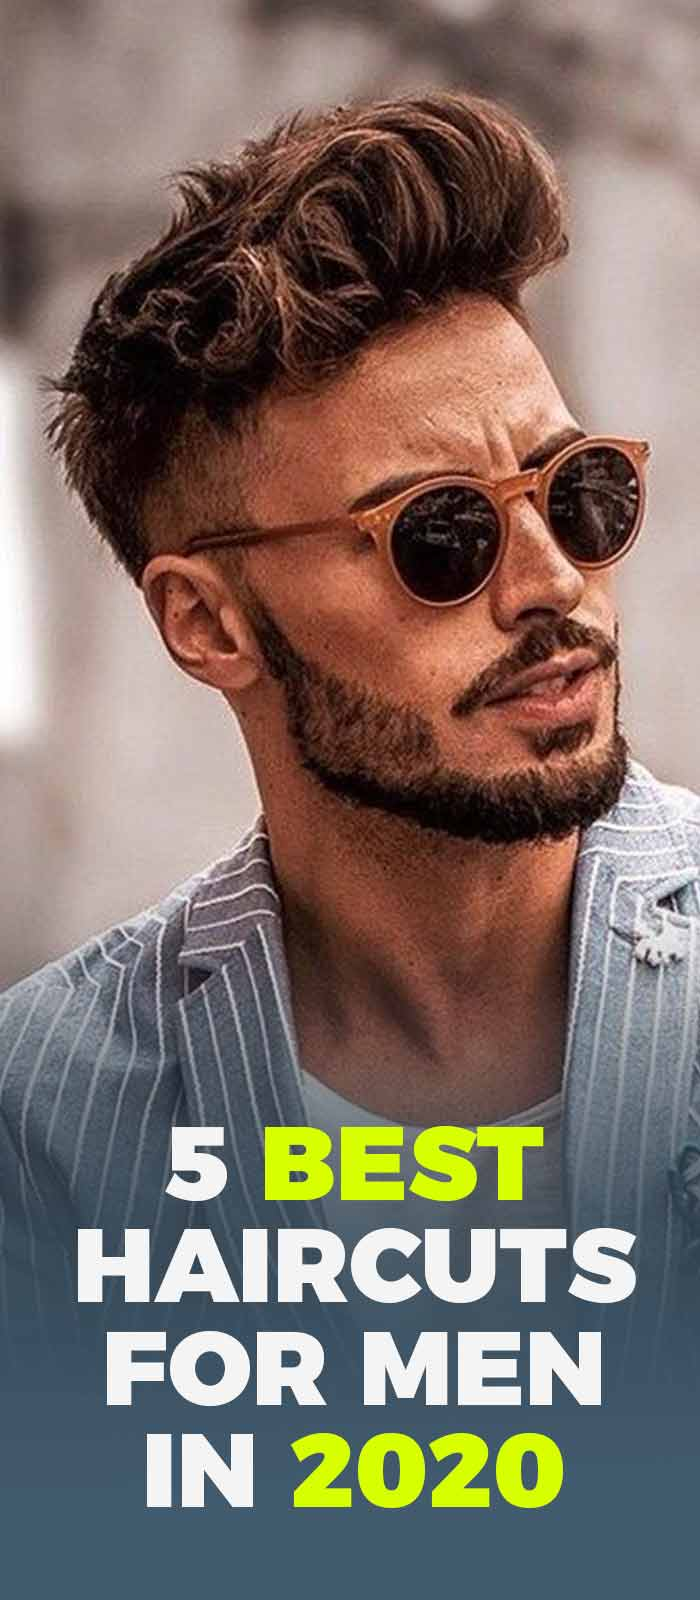 5-Best-Haircuts-for-Men-in-2020